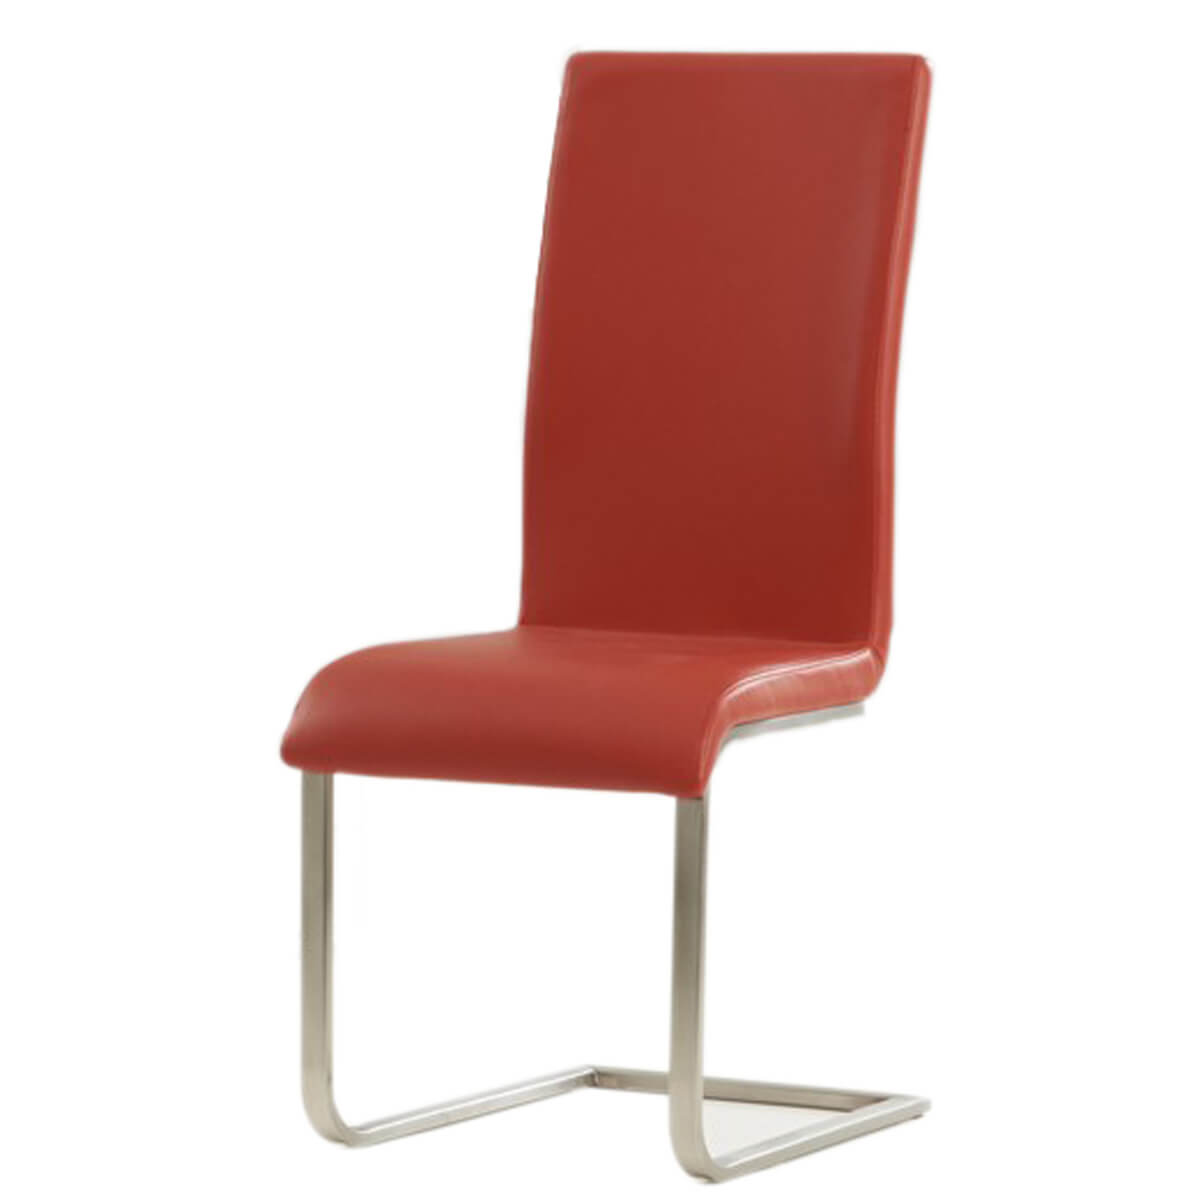 Malibu Cantilever Red Faux Leather Dining Chair  Free